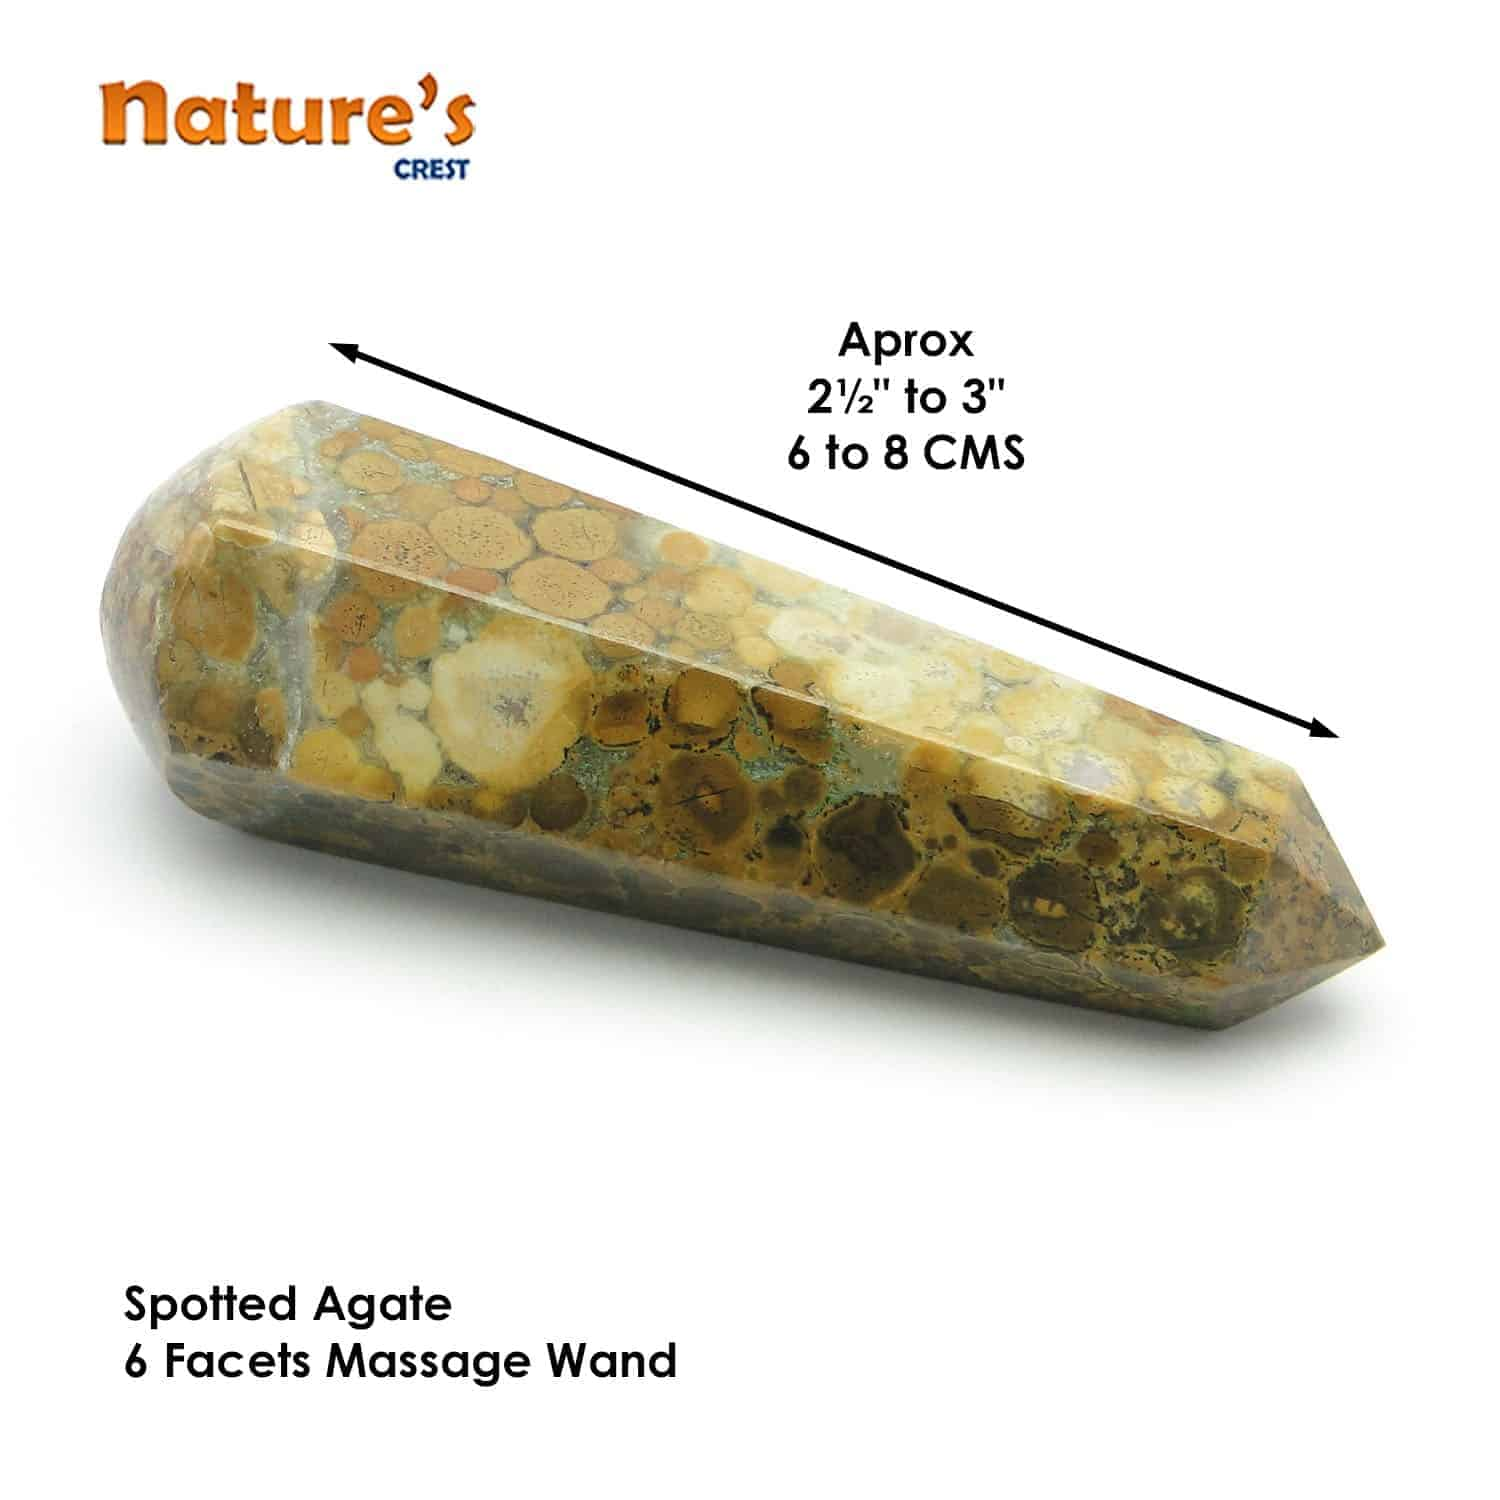 Spotted Agate Healing Wand Massage Stick Nature's Crest MS016 ₹399.00